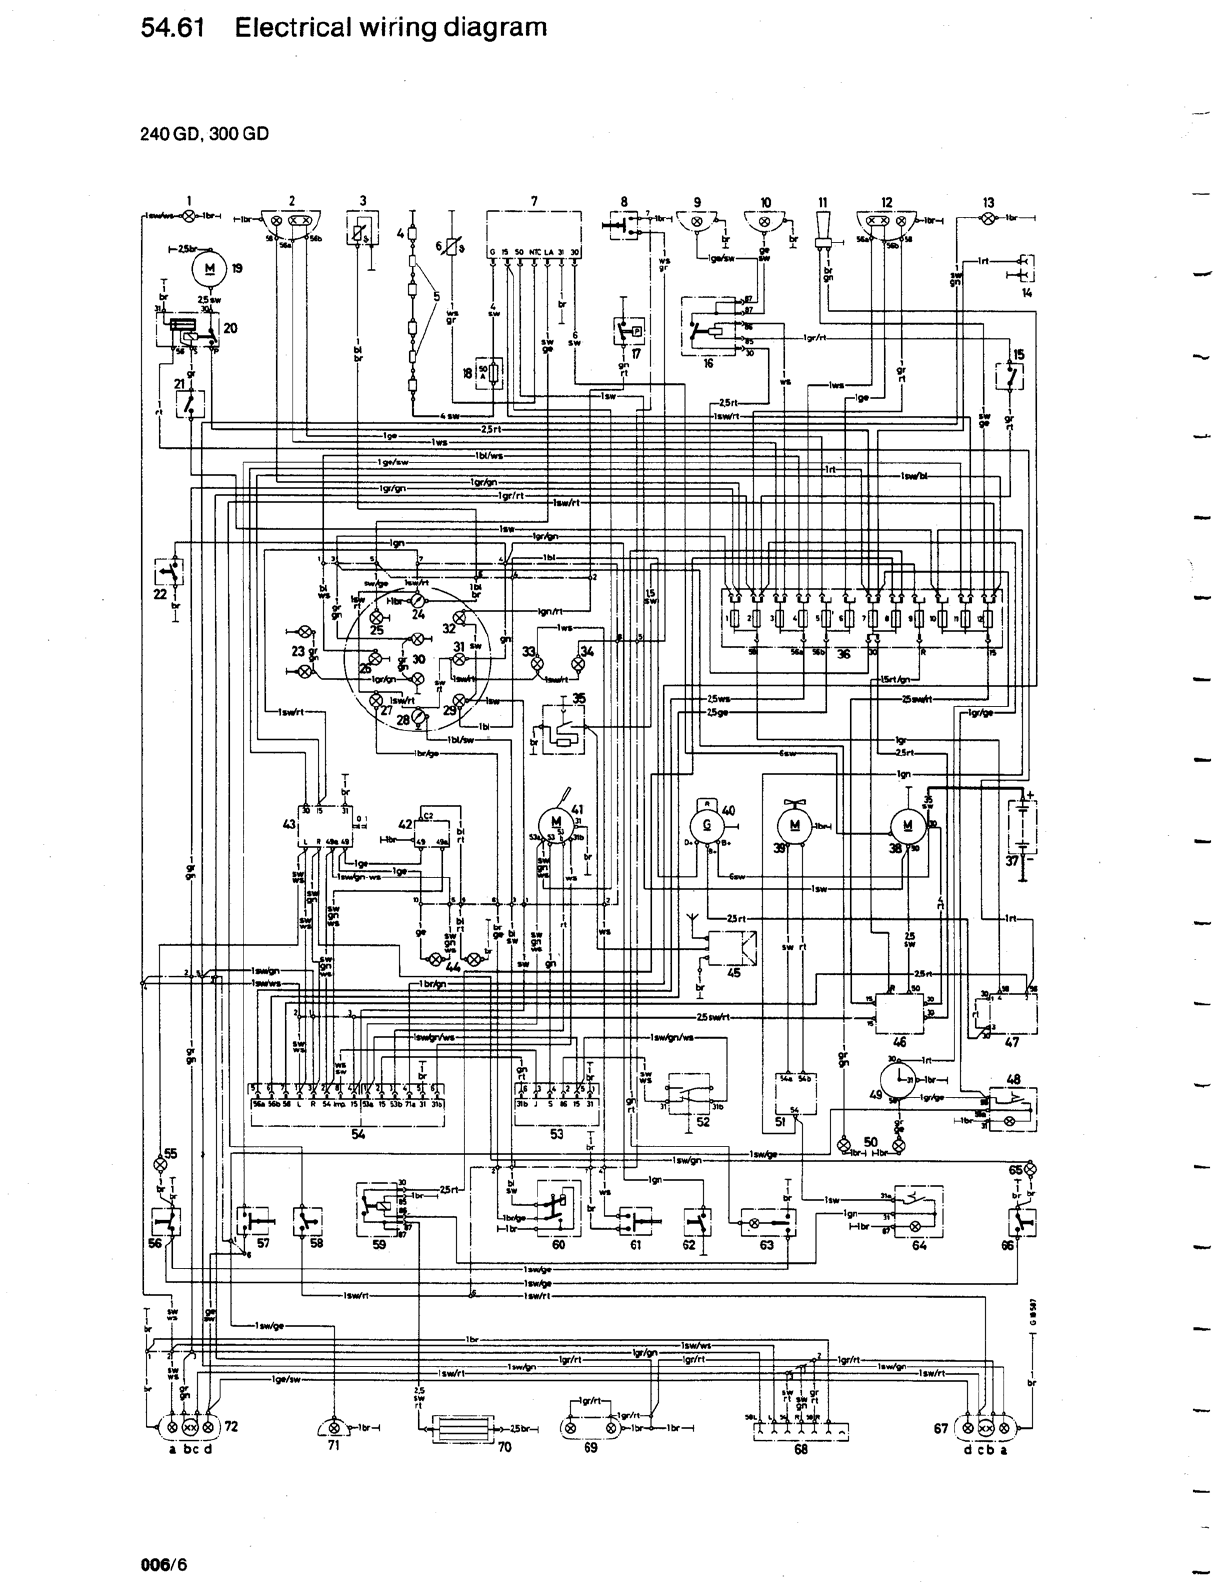 mercedes g 300 misc documents wiring diagrams pdf